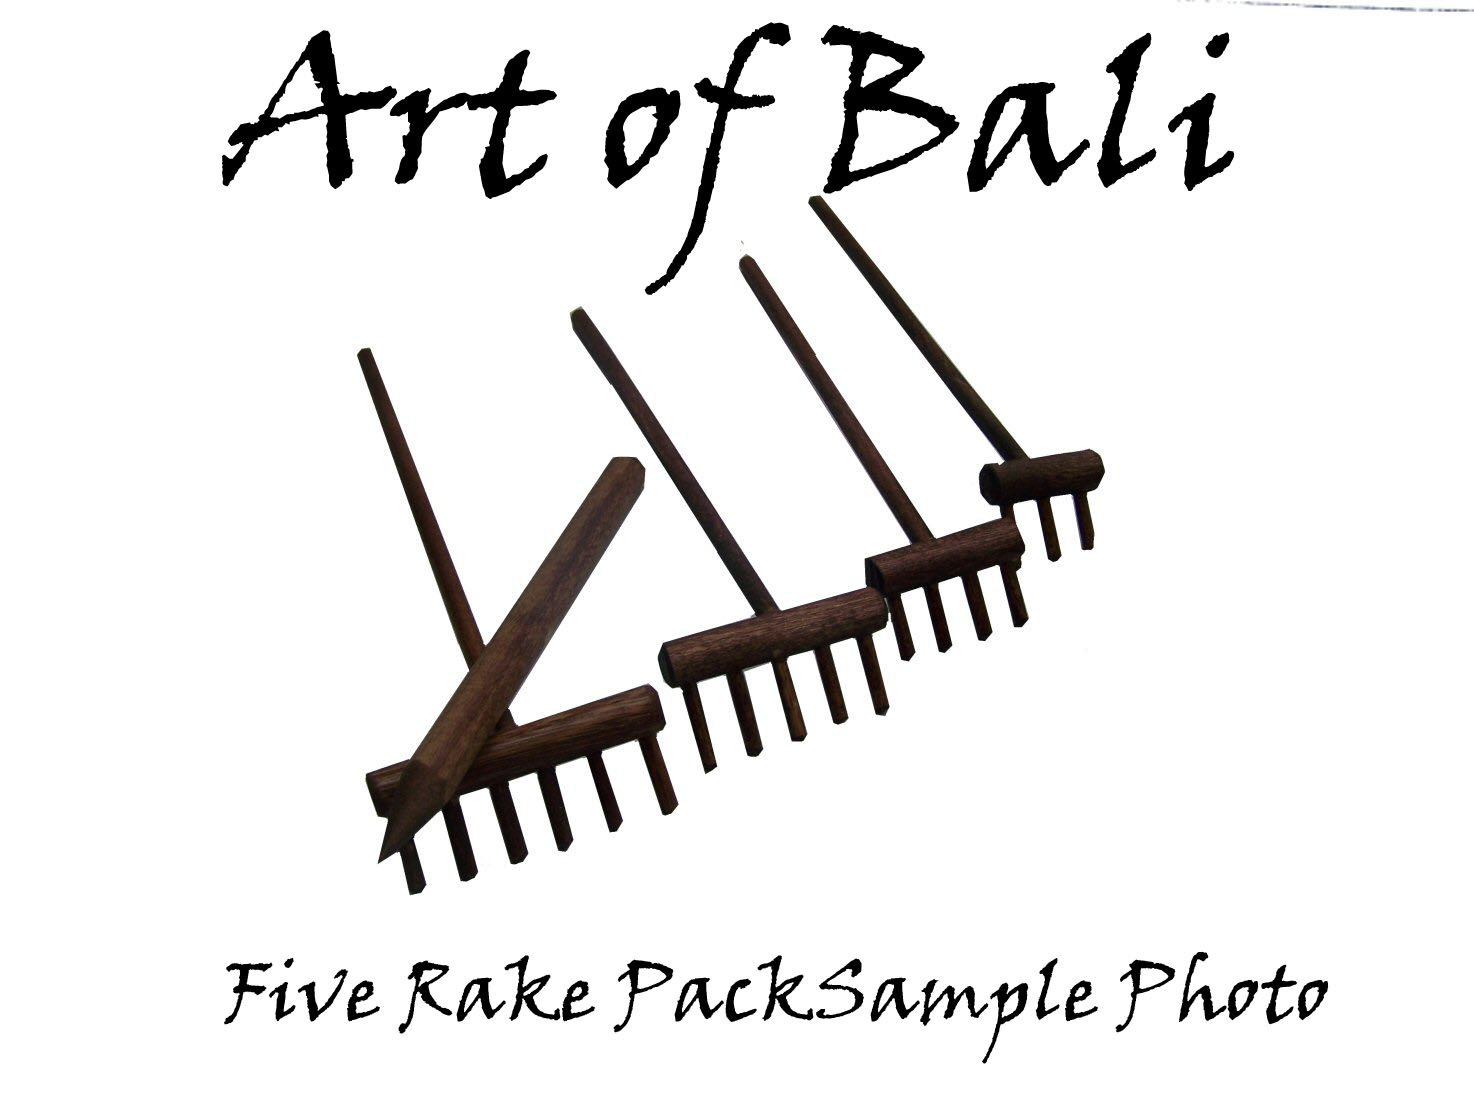 Art of Bali Zen Garden Rake - Art of Bali Zen Garden Rake Five Pack by Art of Bali